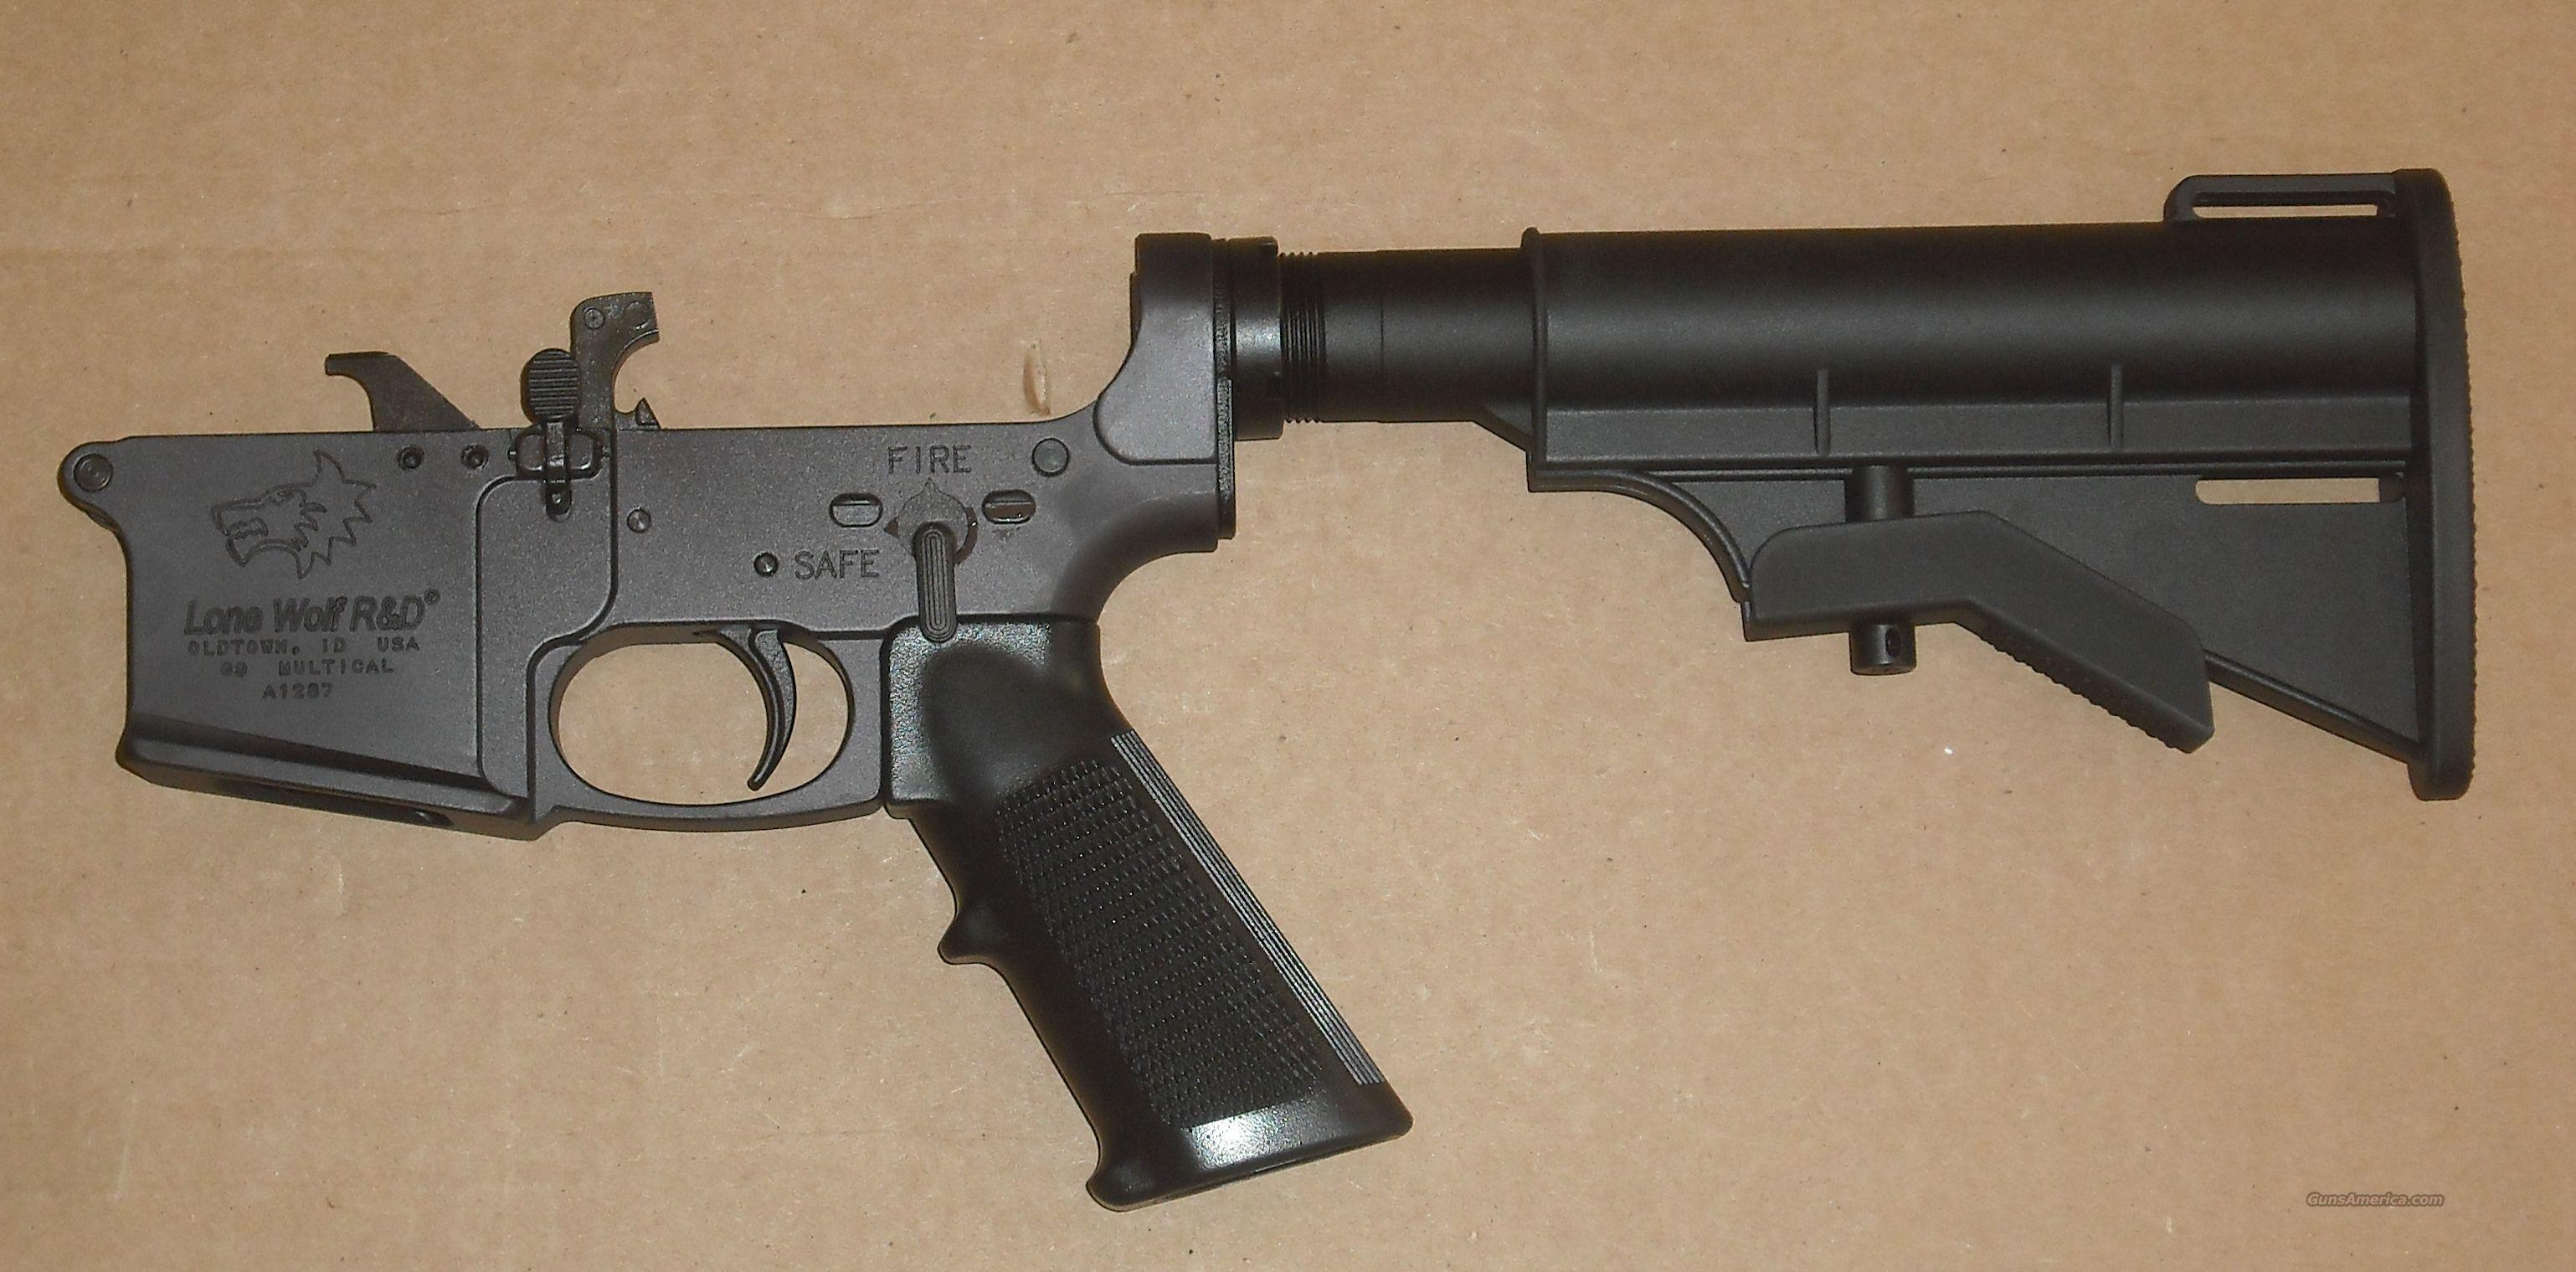 Lone Wolf AR-15 9mm lower/ Takes Glock mags  Guns > Rifles > AR-15 Rifles - Small Manufacturers > Lower Only